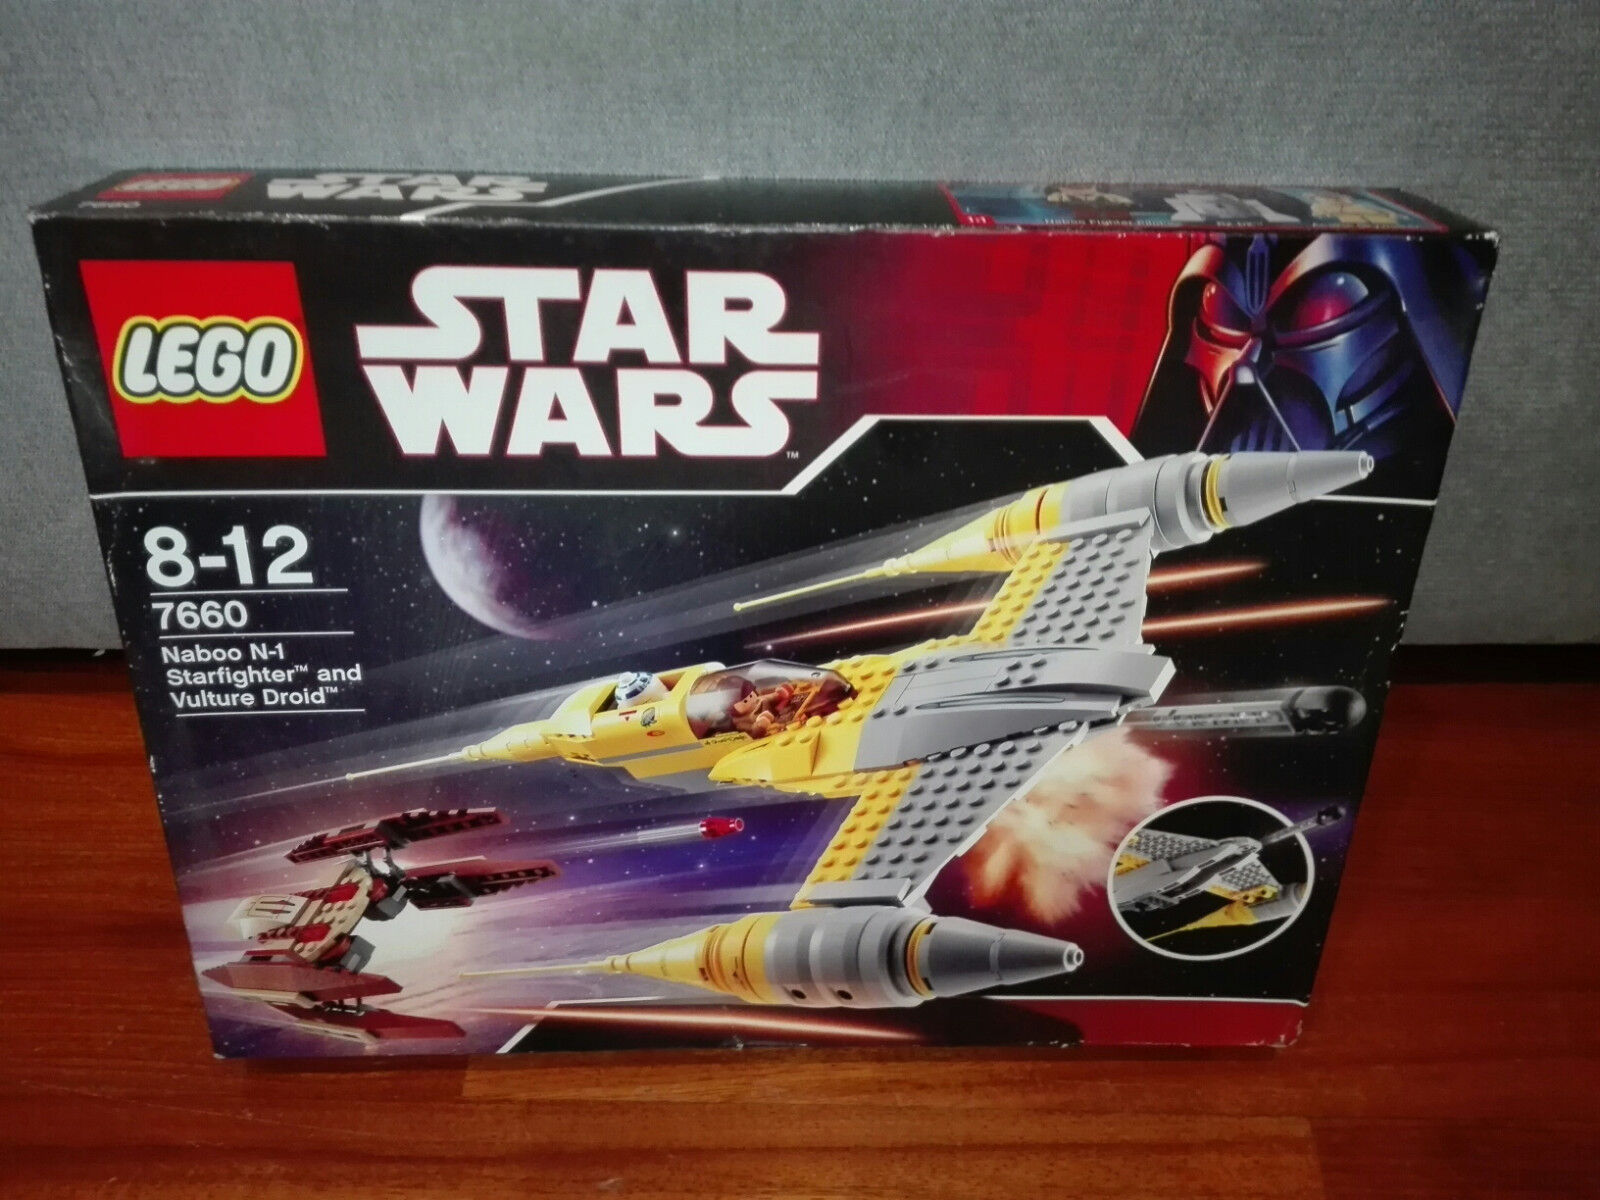 LEGO Star Wars Naboo N-1 Starfighter with Vulture Droid (7660)NEWSEALED